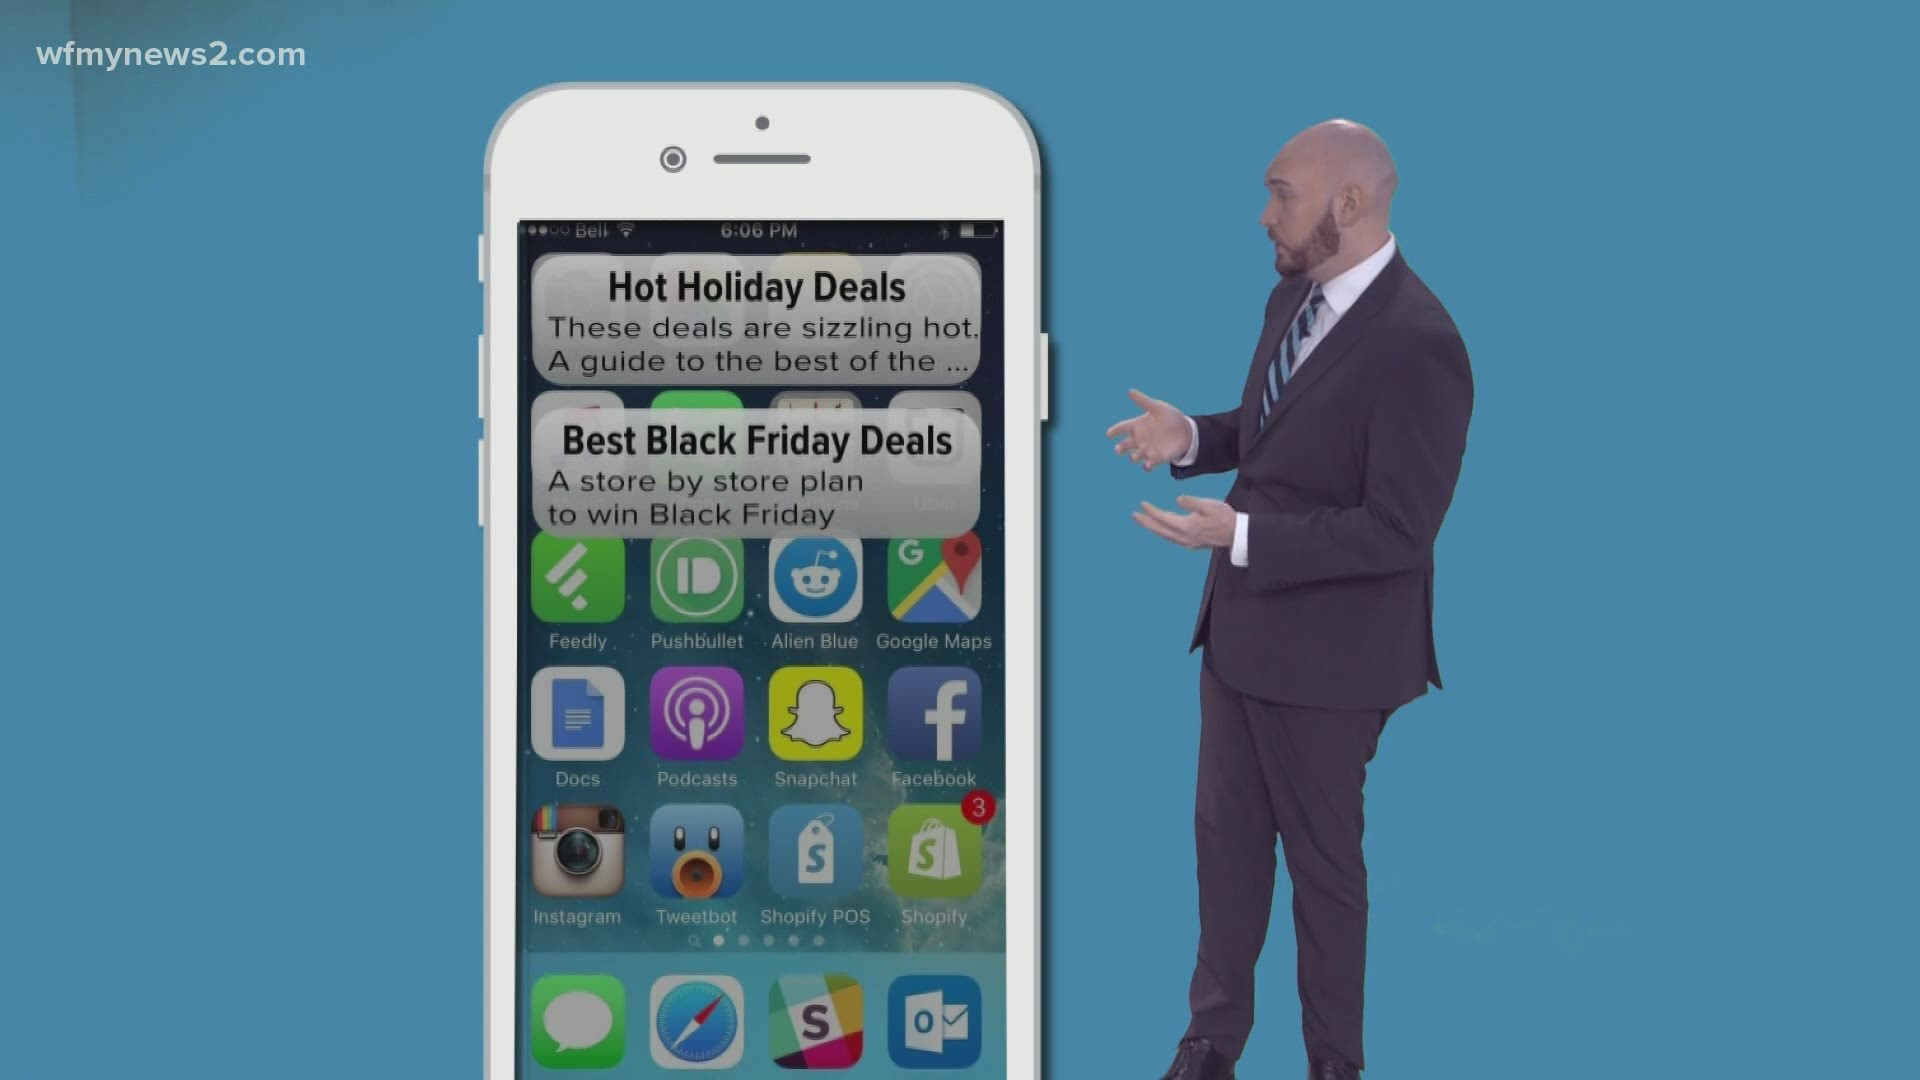 Best Black Friday Tricks To Save Even More Money Wfmynews2 Com